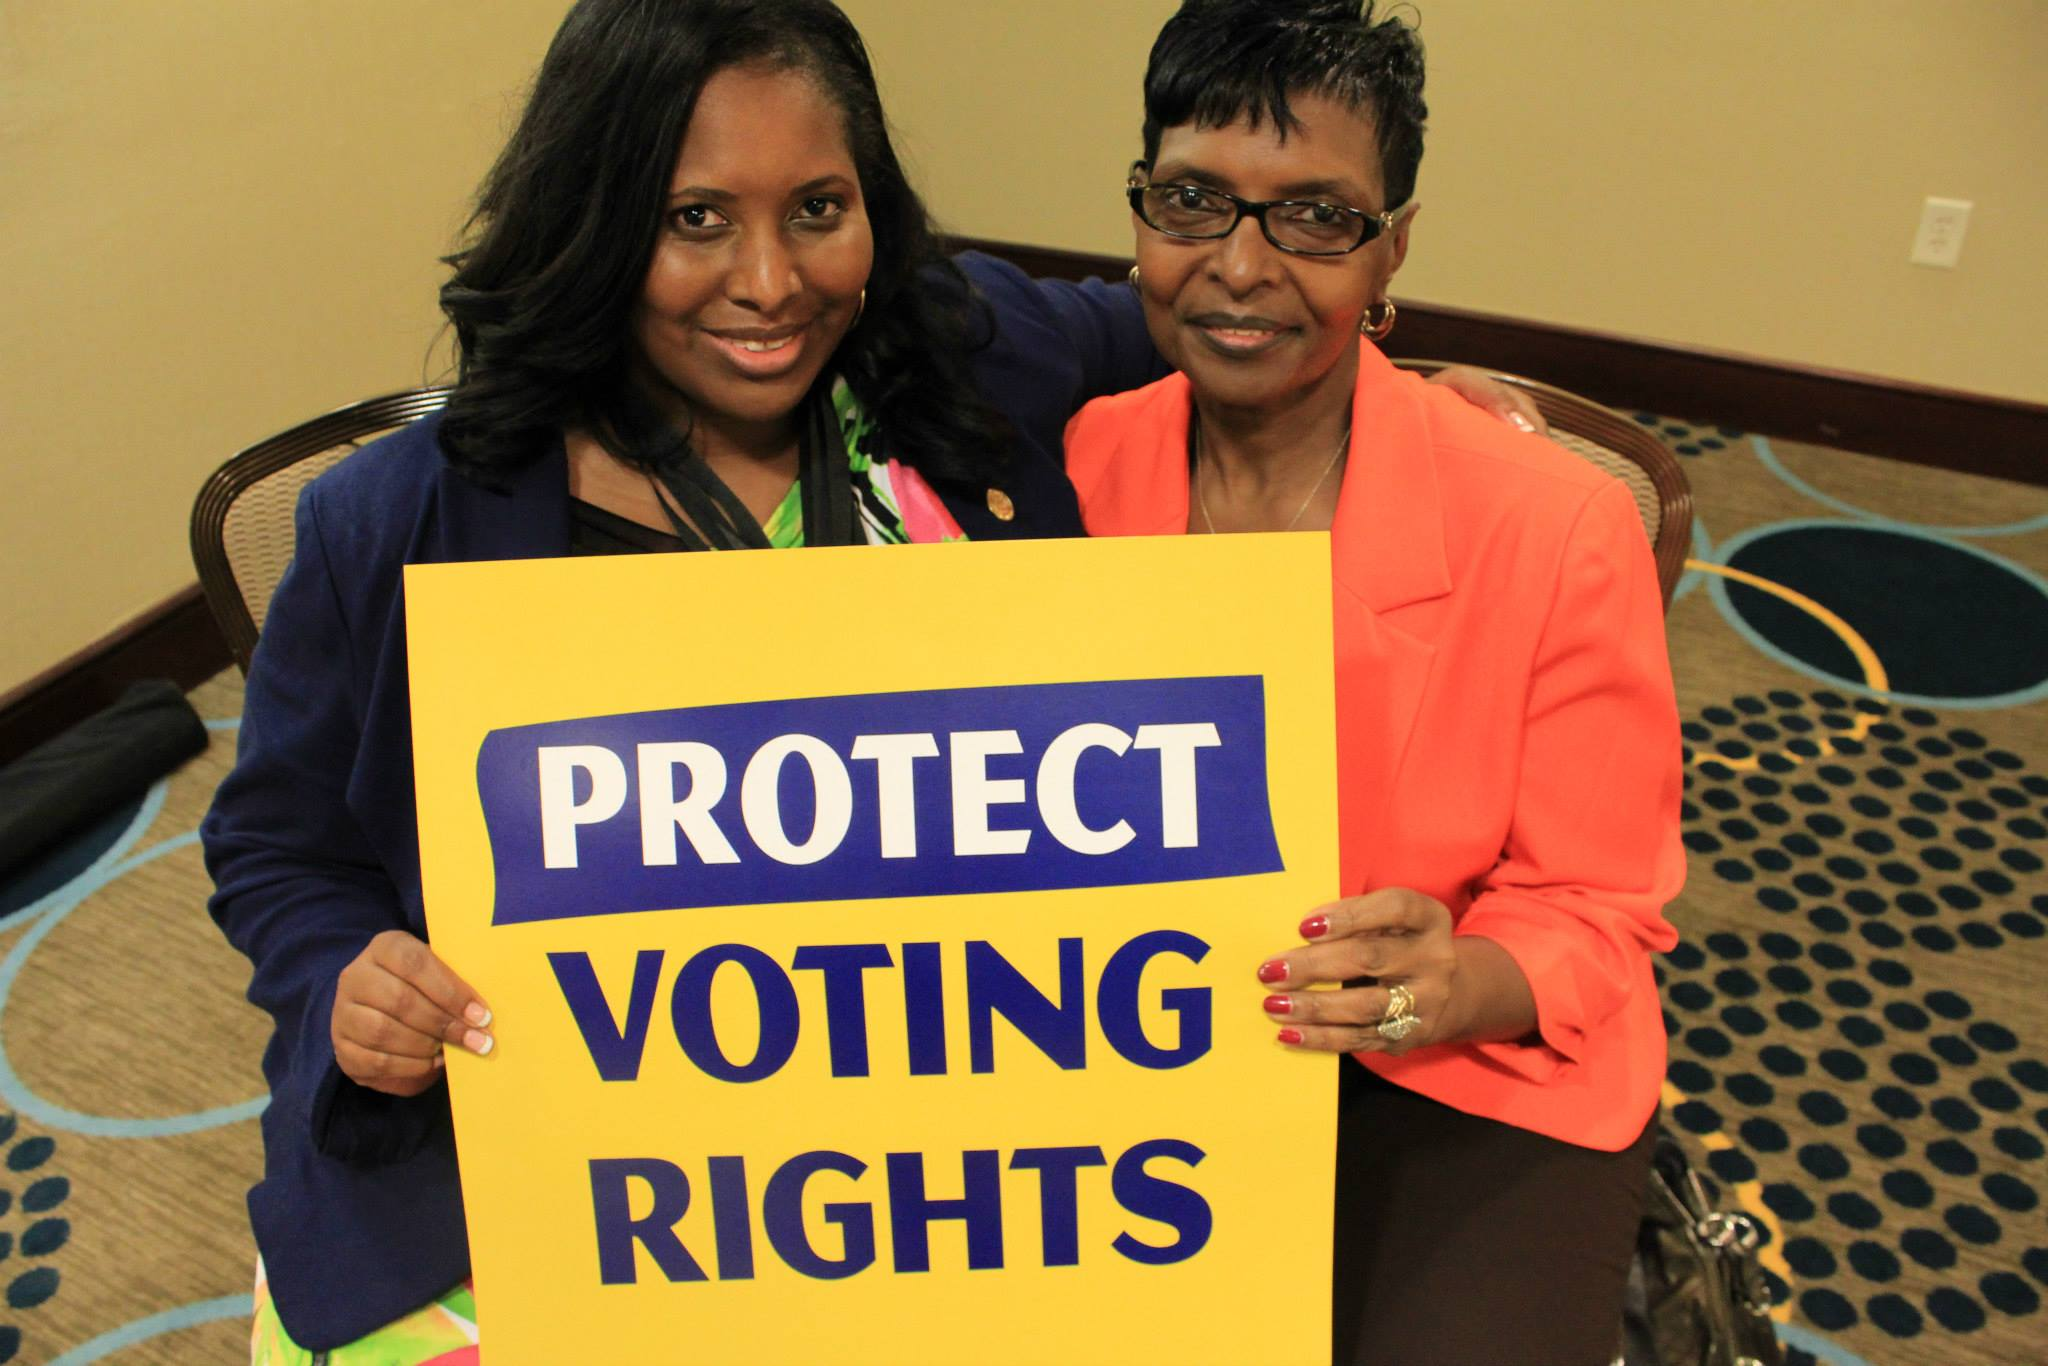 O Naacp Takes Over Polling Station